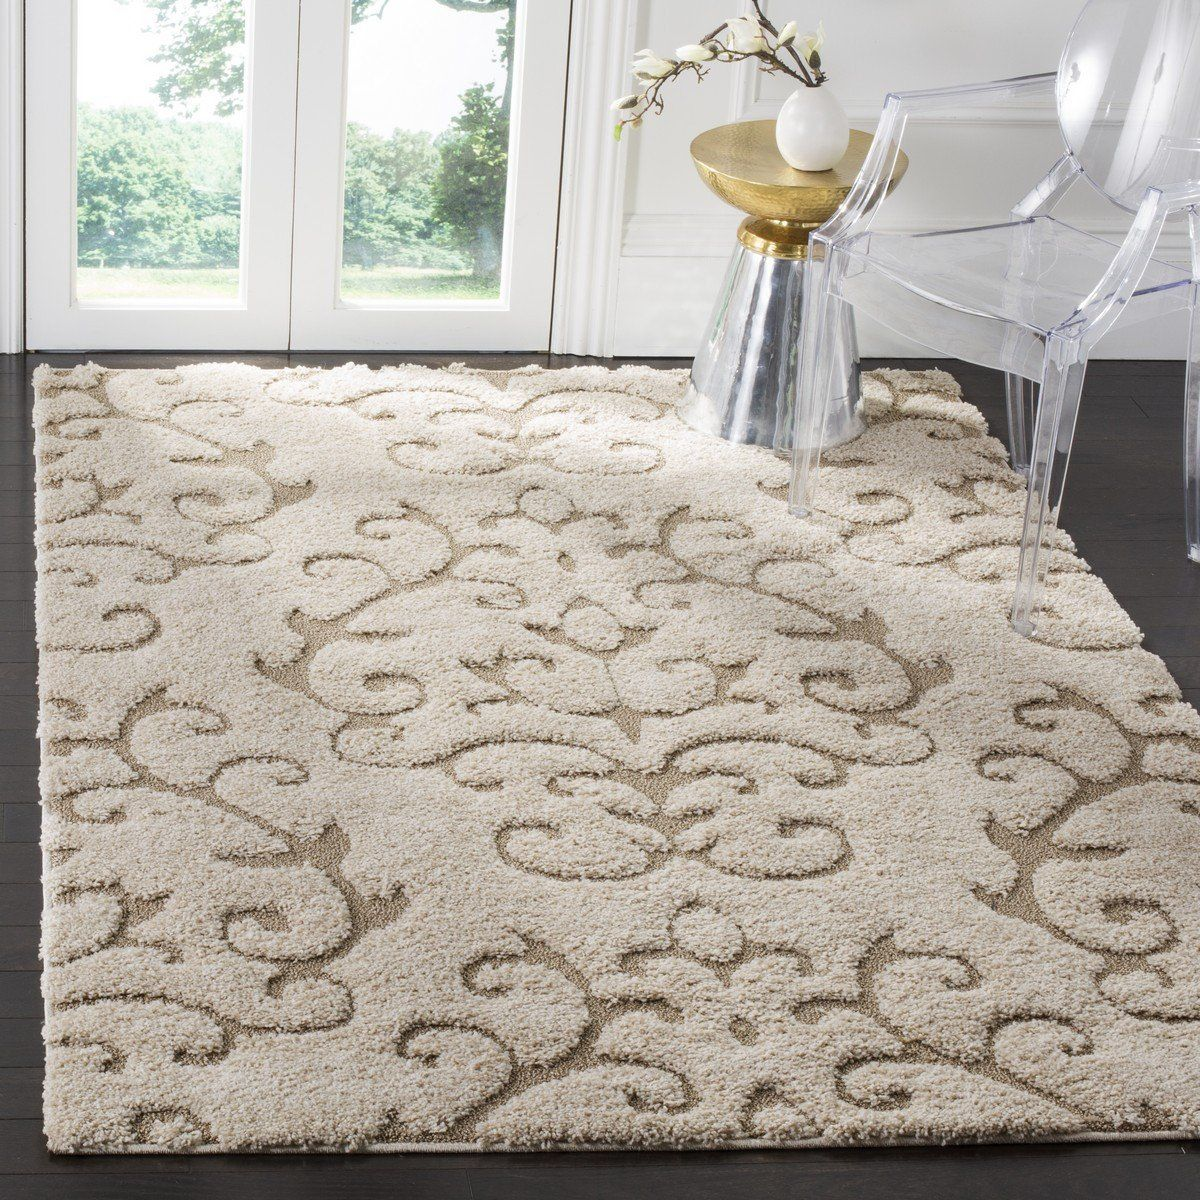 Safavieh Florida Shag Sg470 1113 Cream Beige Rug Area Rugs